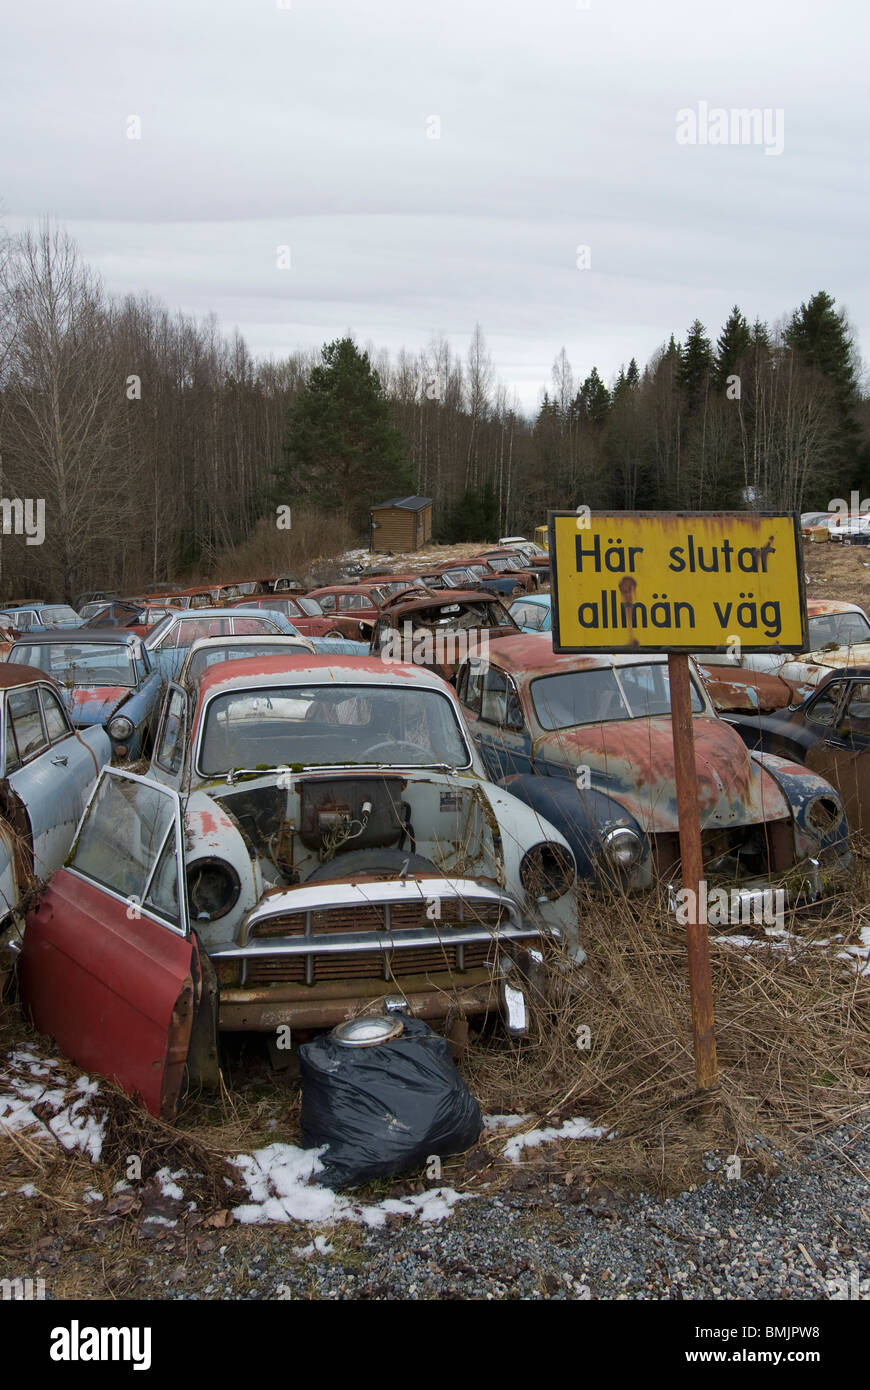 Scandinavia, Sweden, Varmland, View of abandoned car - Stock Image